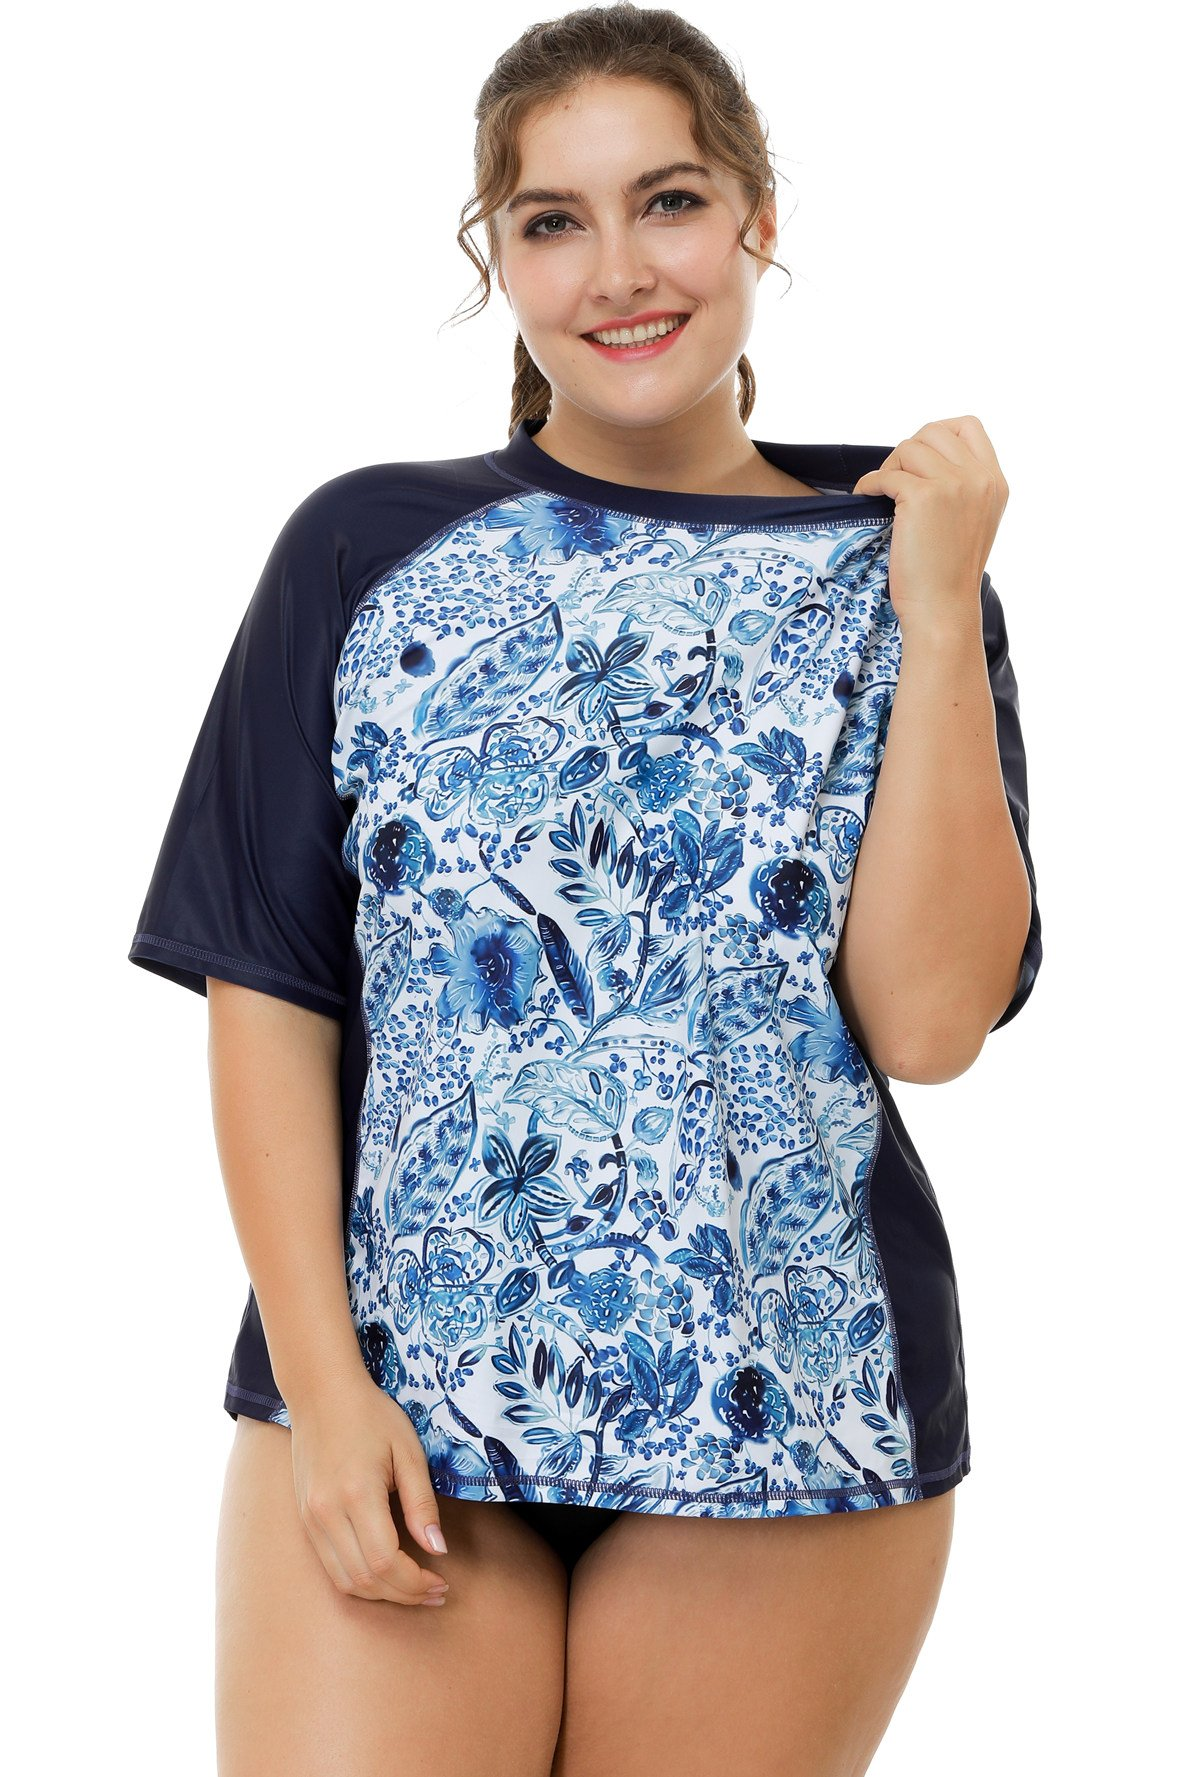 ATTRACO Women Rashguard Swimsuit Floral Plus Size uv Swim Shirts SPF 50 Navy 1x